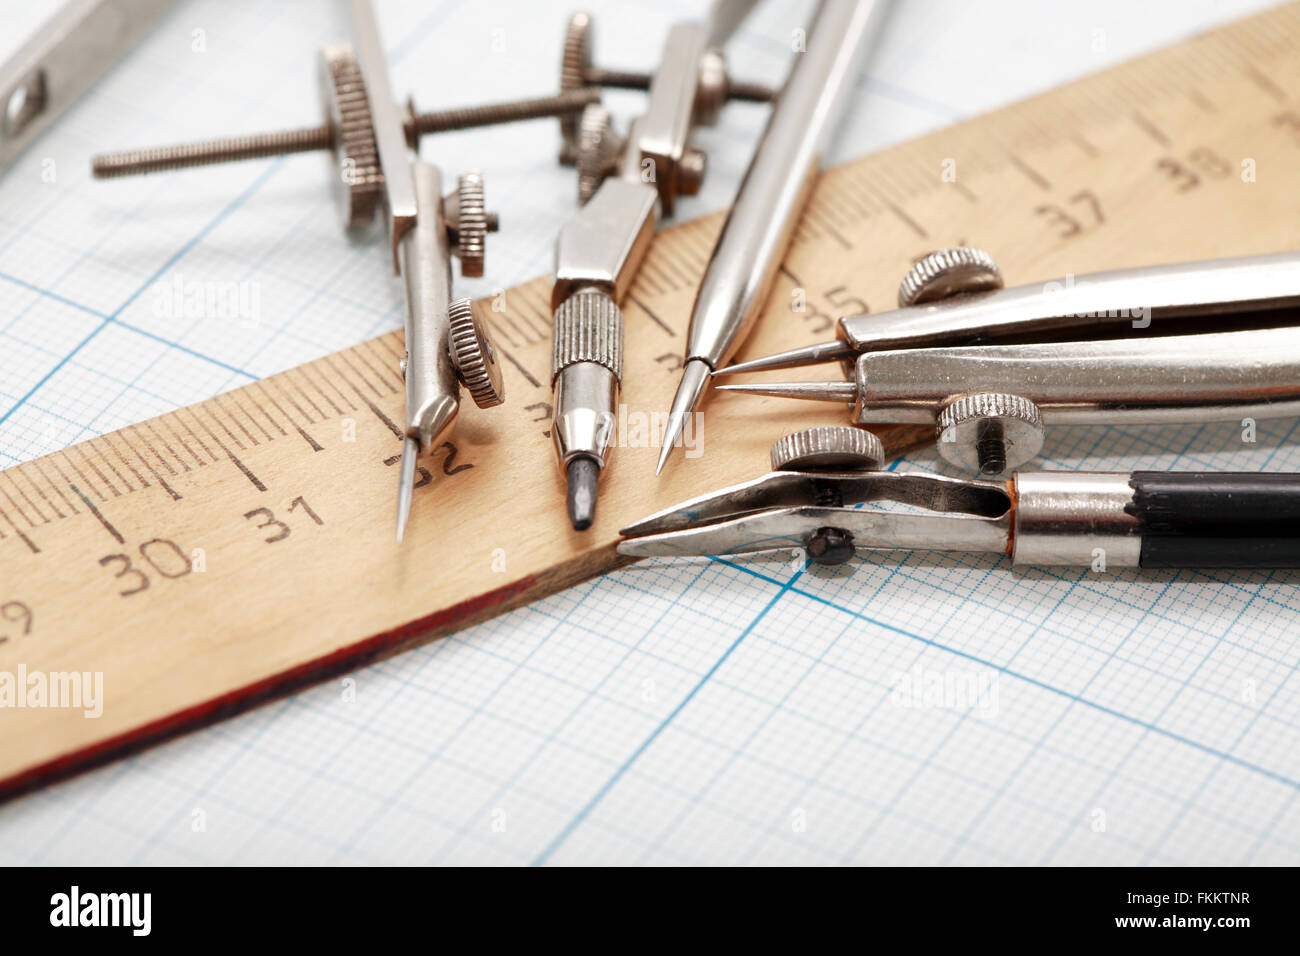 Set Of Drawing Instrument And Ruler On Graph Paper Stock Photo